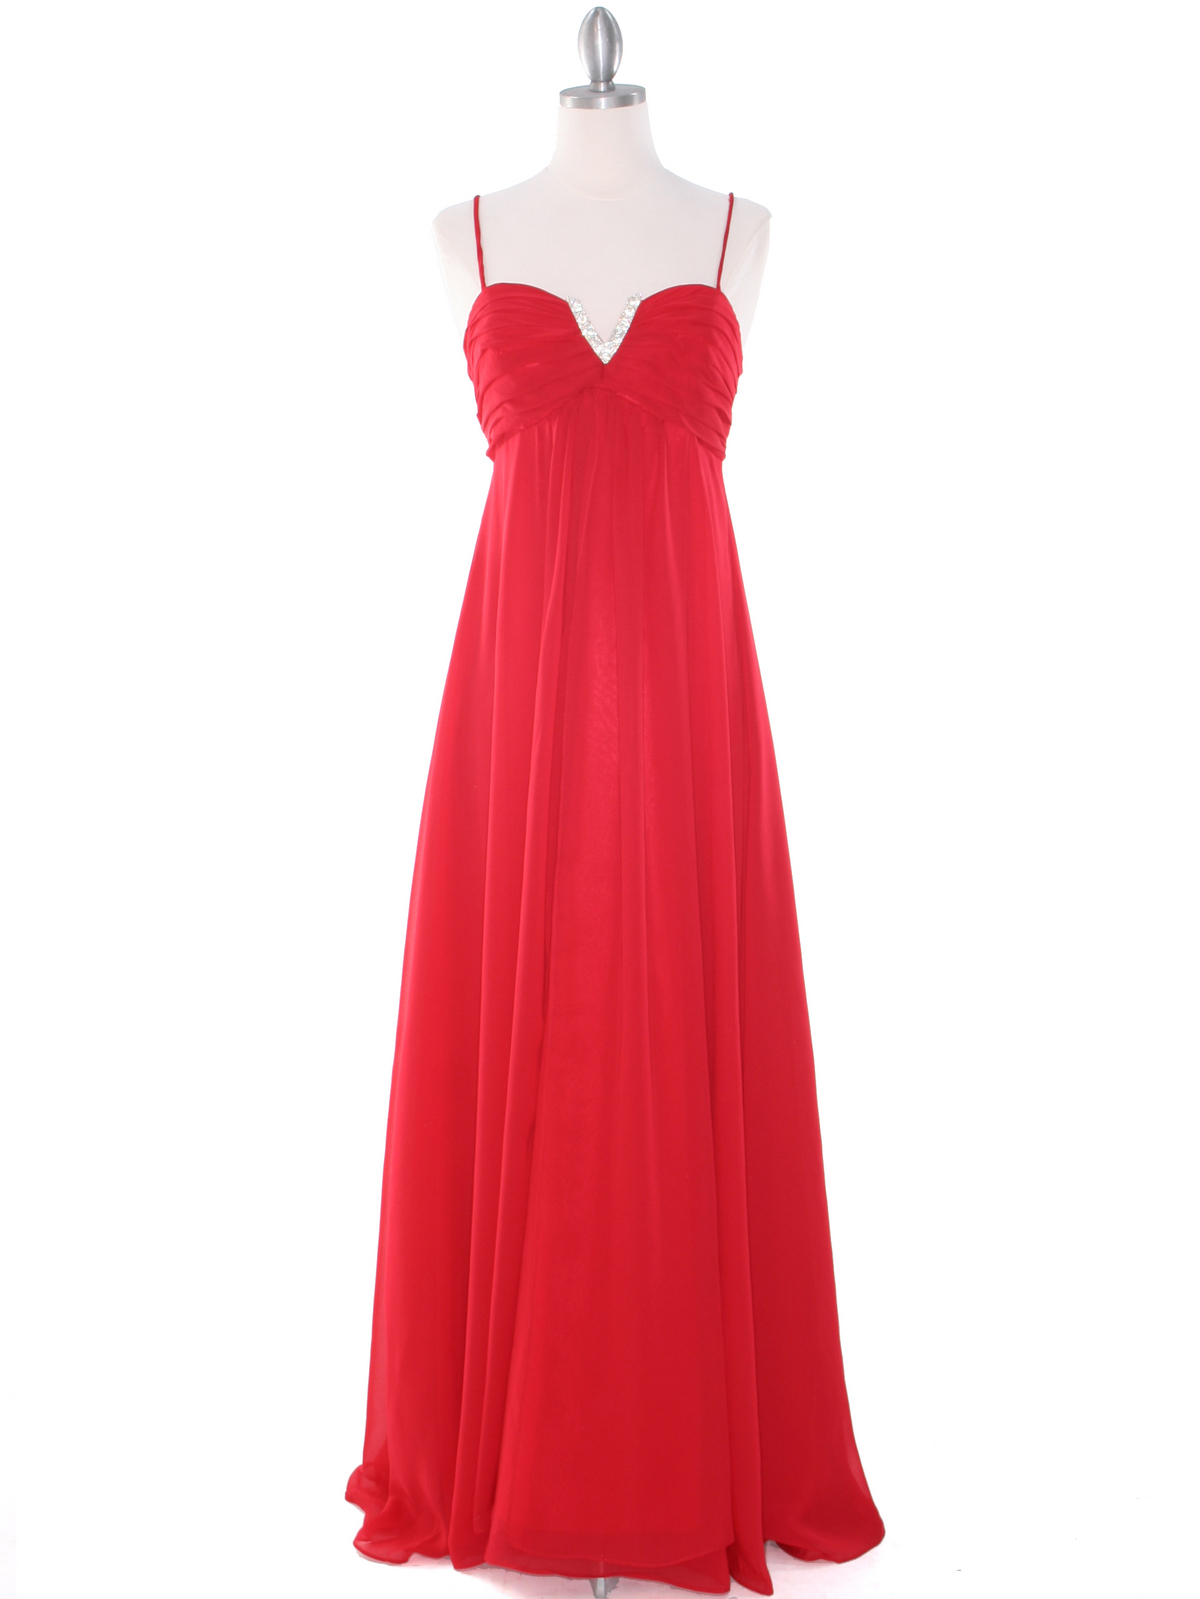 2015 new prom dresses and Evening Dress of Bridesmaid dresses Sexy fine strapless gown Empire Waist Chiffon Evening Dress